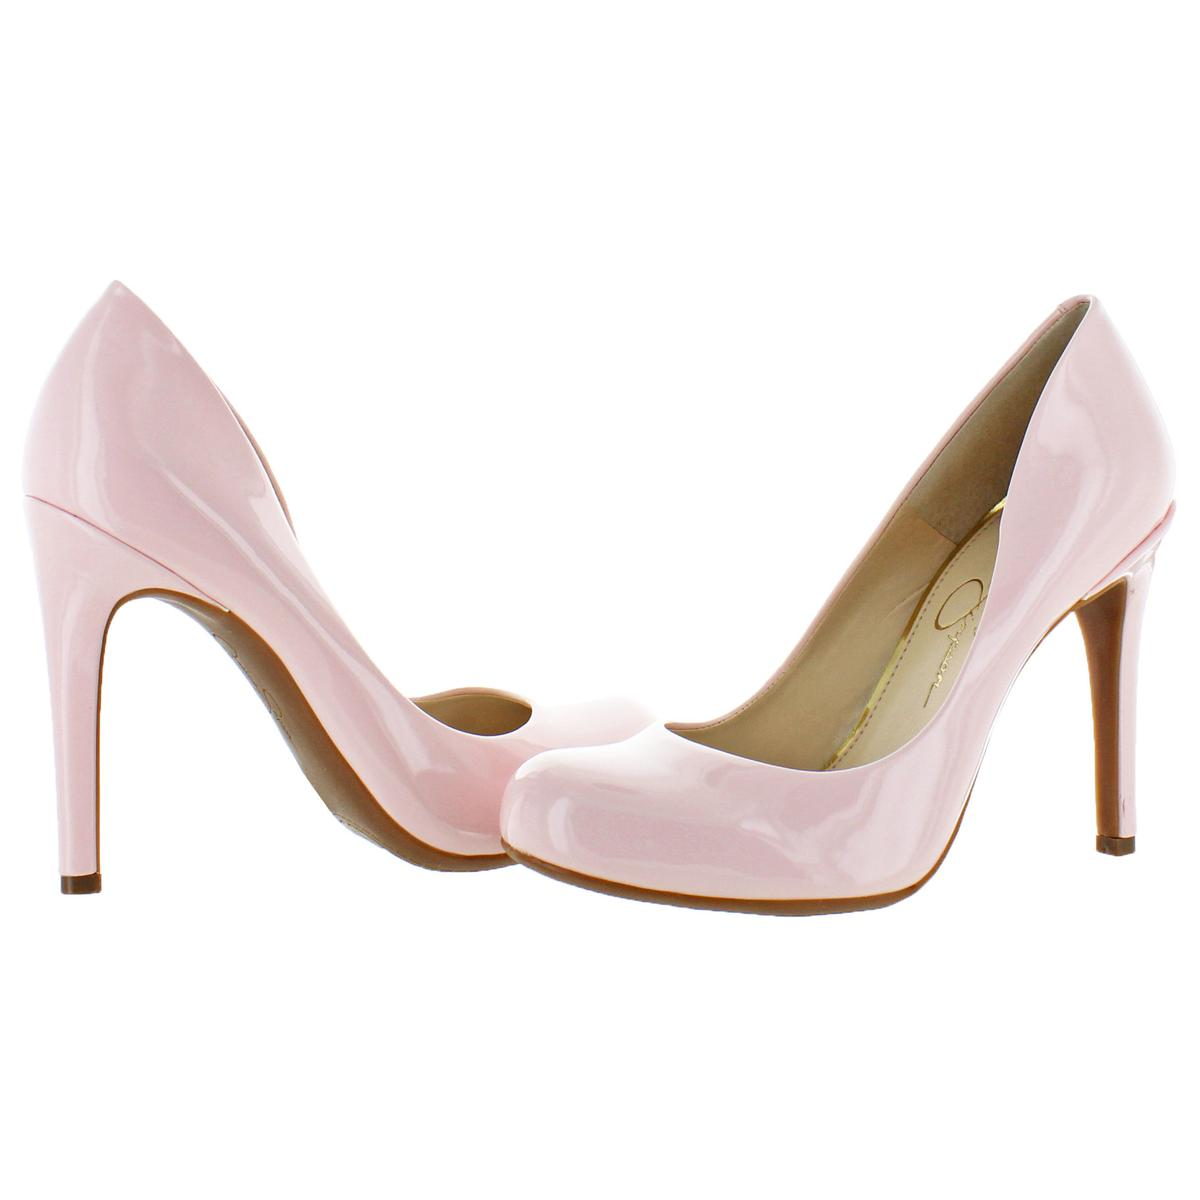 Jessica-Simpson-Women-039-s-Calie-Round-Toe-Classic-Heels-Pumps-Shoes thumbnail 3